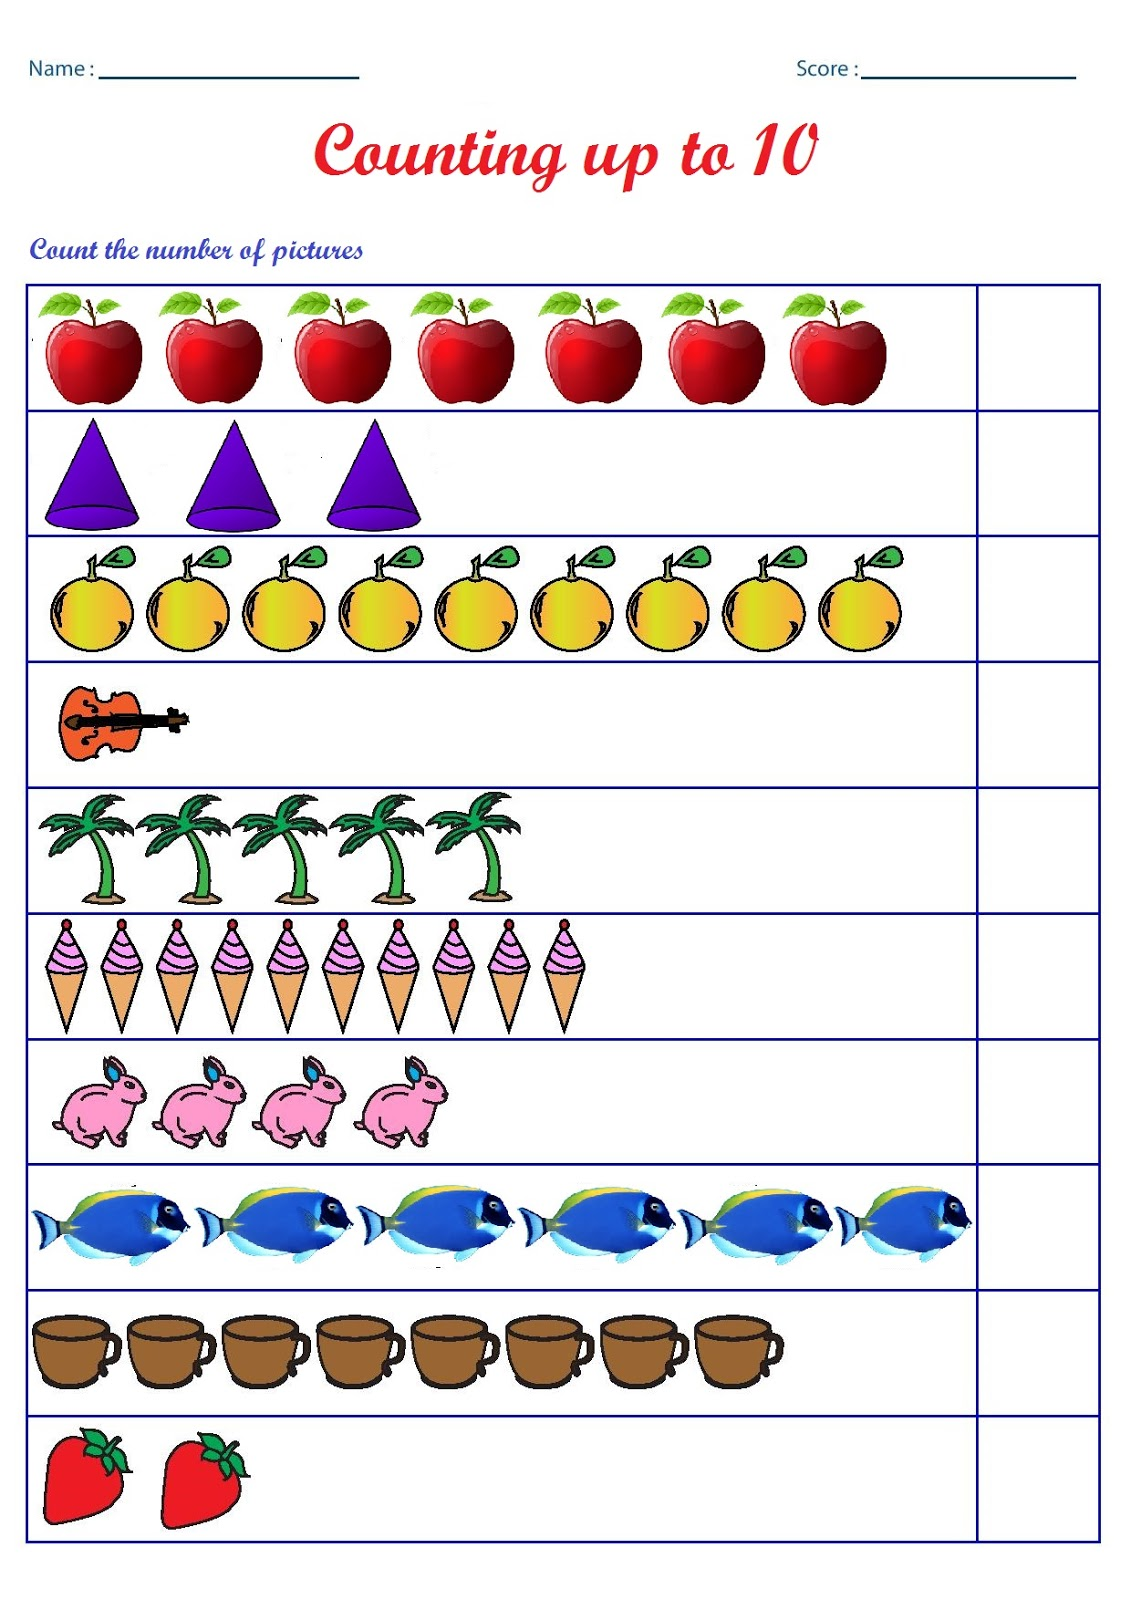 Printables Counting Worksheets For Kindergarten number counting worksheets for kindergarten scalien count n color the